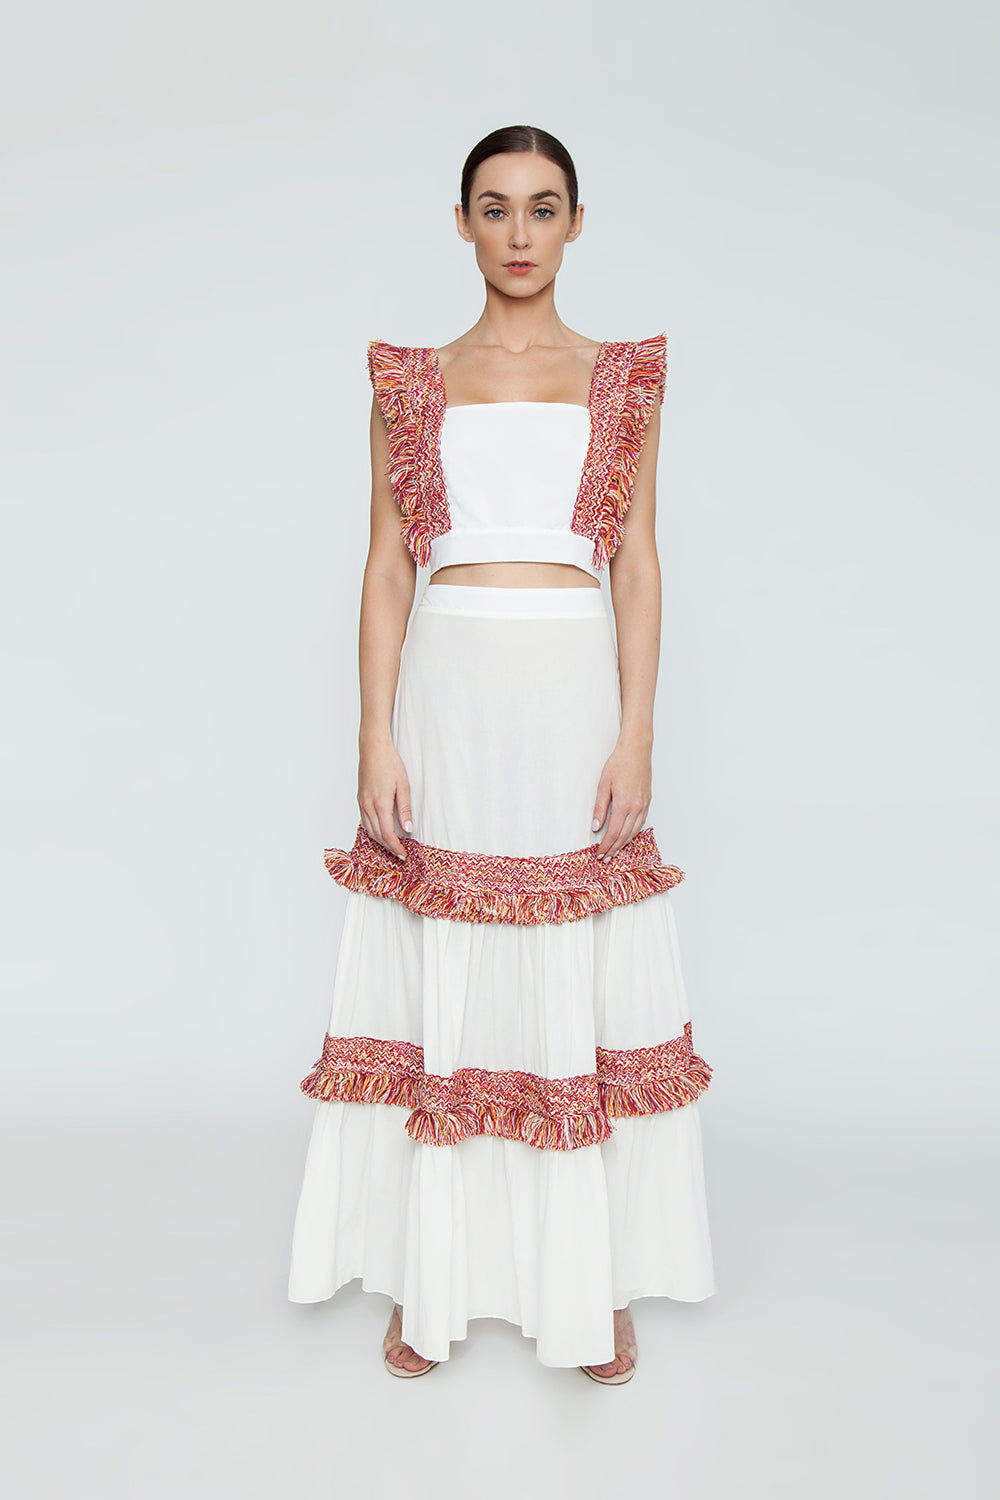 CLUBE BOSSA Pisan Long Fringe Skirt - White & Jazzy Fringes Red Skirt | White & Jazzy Fringes Red| Clube Bossa Pisan Long Fringe Skirt - White & Jazzy Fringes Red Long layered maxi skirt in white with warm-toned fringe tier detail. The bold red and yellow toned fringe pops off the contrasting clean white of this skirt. The high waisted Front View